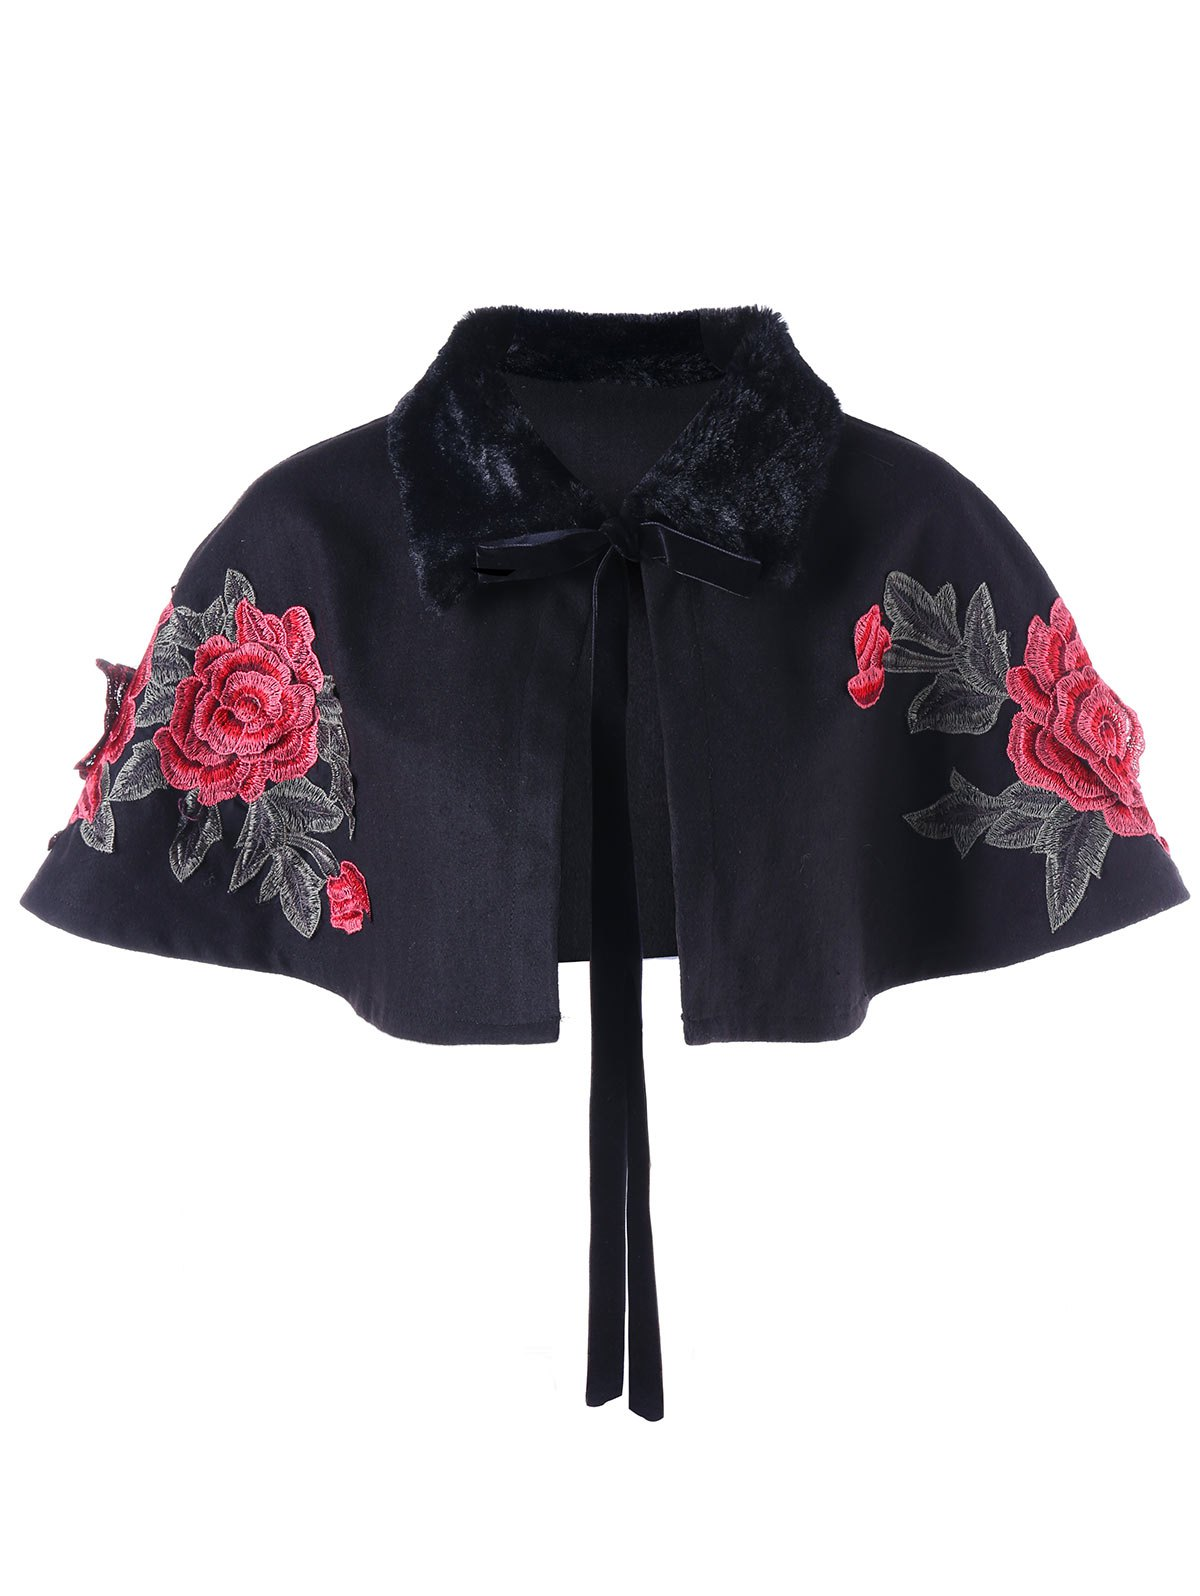 Faux Fur Panel Plus Size Embroidery ShrugWOMEN<br><br>Size: 5XL; Color: BLACK; Clothes Type: Fur &amp; Faux Fur; Material: Polyester; Type: Wide-waisted; Shirt Length: Short; Sleeve Length: Short; Collar: Lapel; Pattern Type: Floral; Embellishment: Embroidery; Style: Fashion; Season: Fall,Winter; Weight: 0.3310kg; Package Contents: 1 x Shrug;